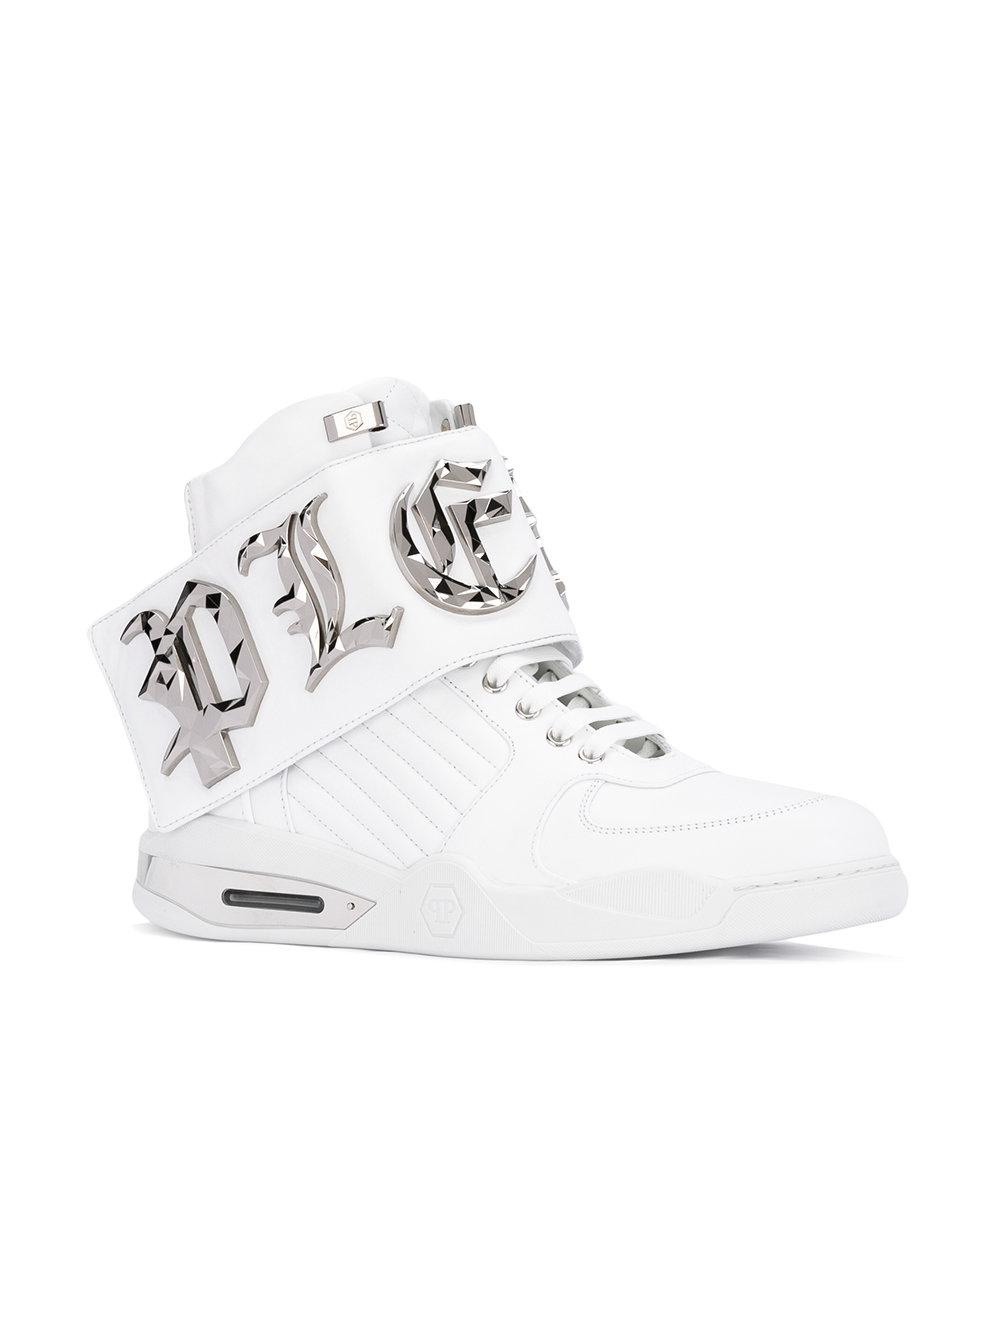 Philipp Plein Leather Embellished High Top Sneakers In